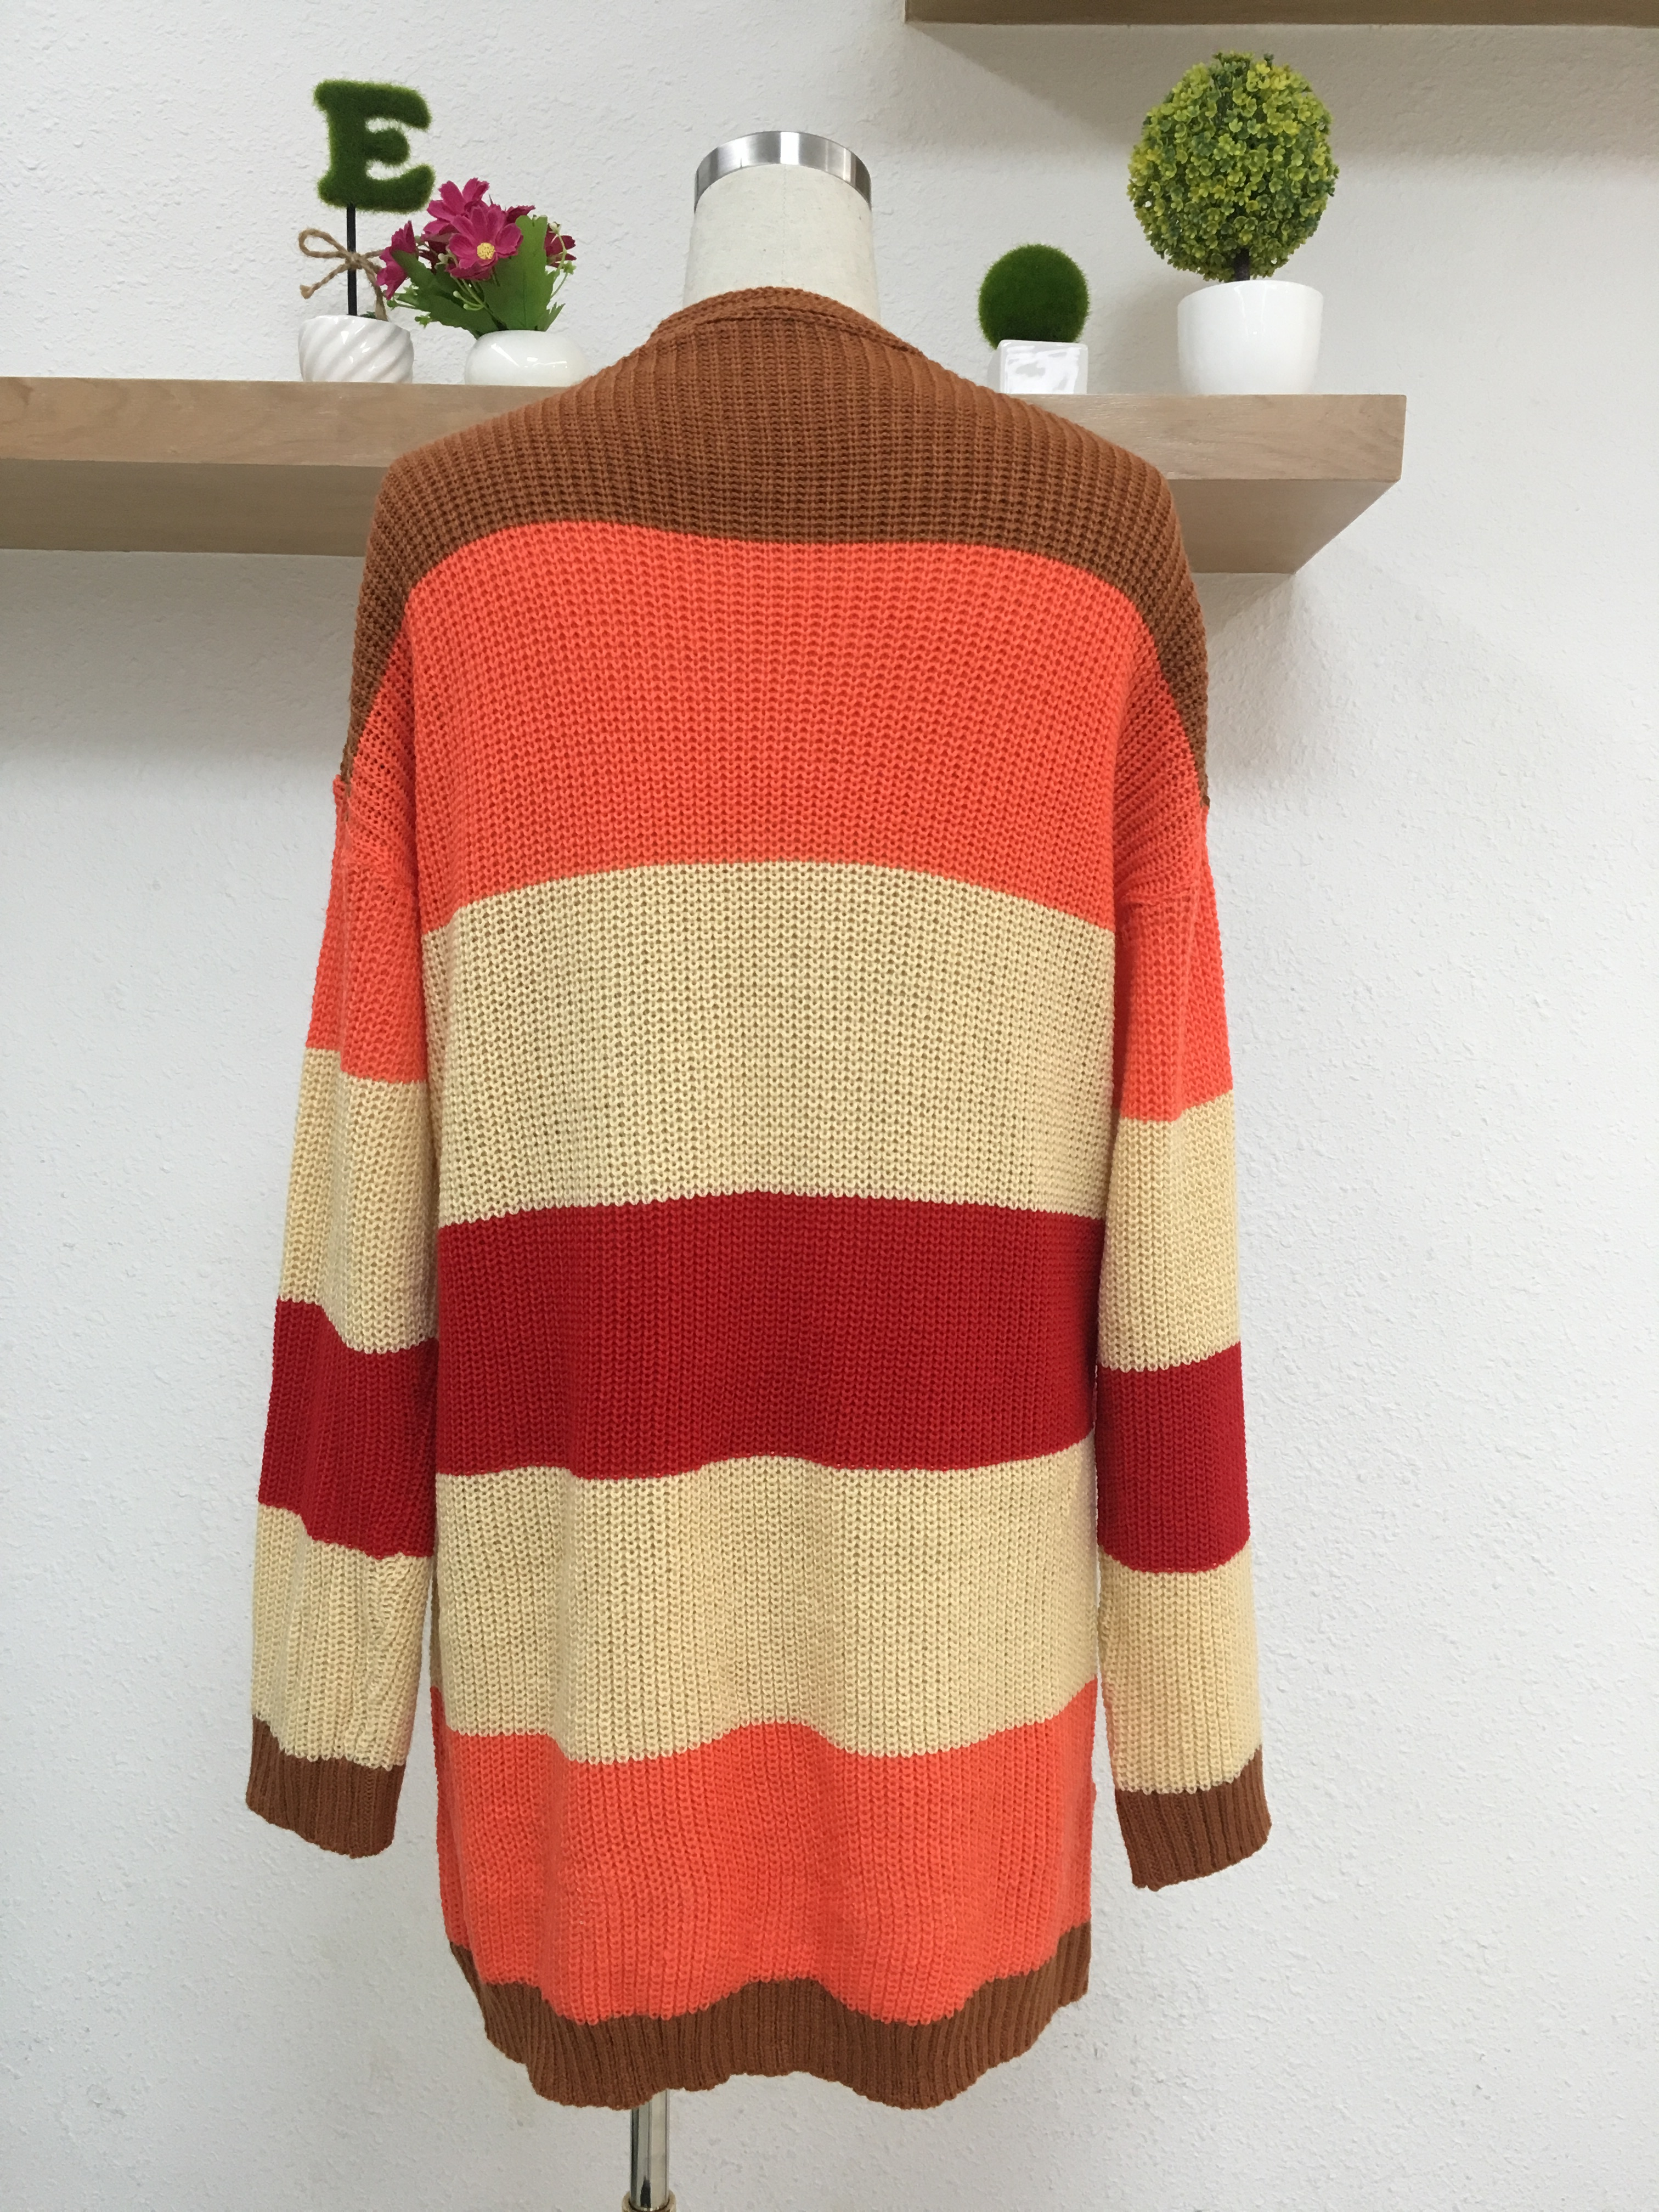 Women 39 s autumn winter 2018 new mid length knit cardigan OL commuter baggy striped rainbow sweater in Cardigans from Women 39 s Clothing